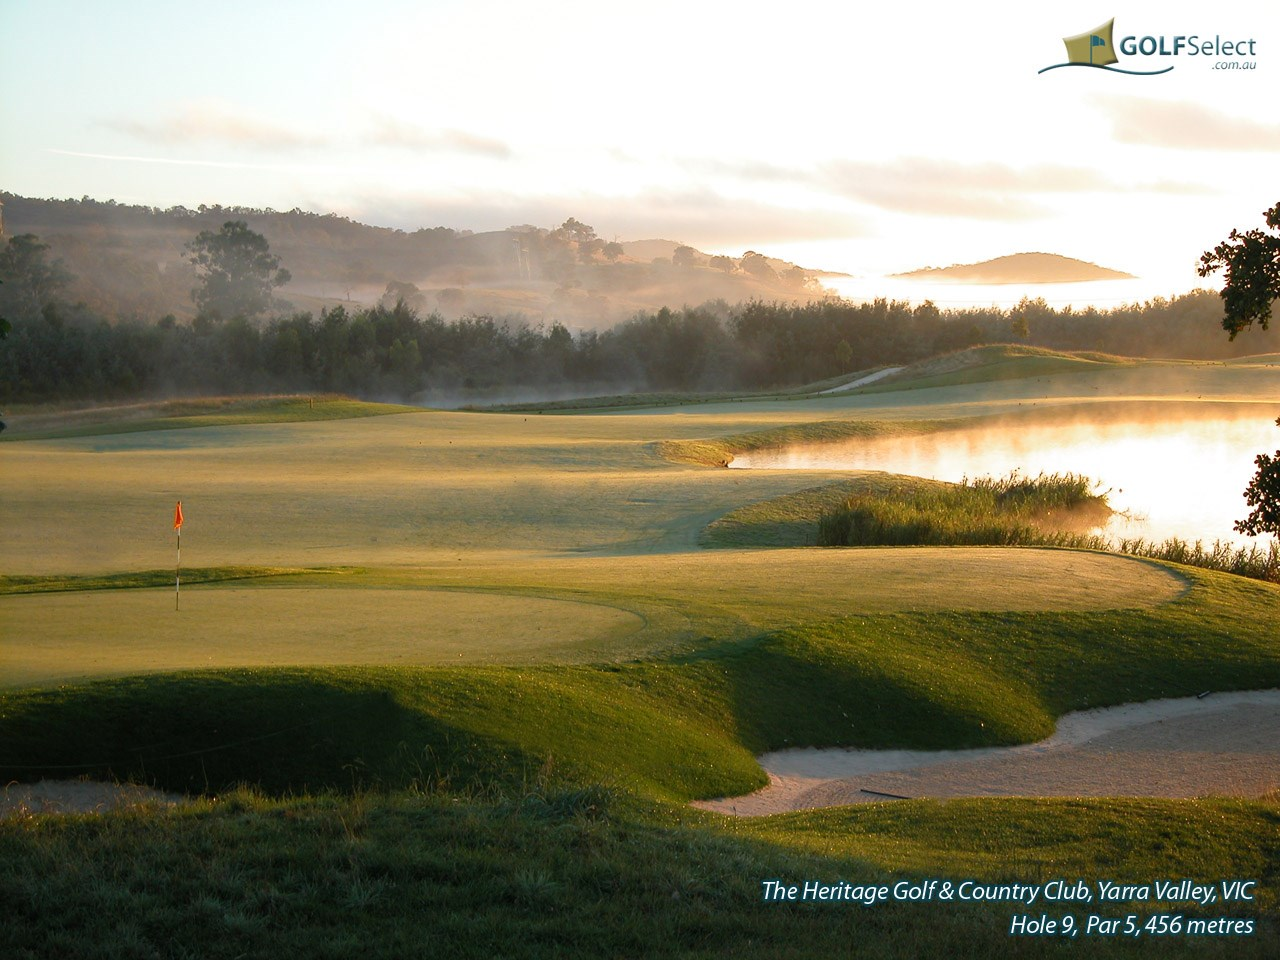 The Heritage Golf and Country Club (St.John Course) Hole 9, Par 5, 456 metres